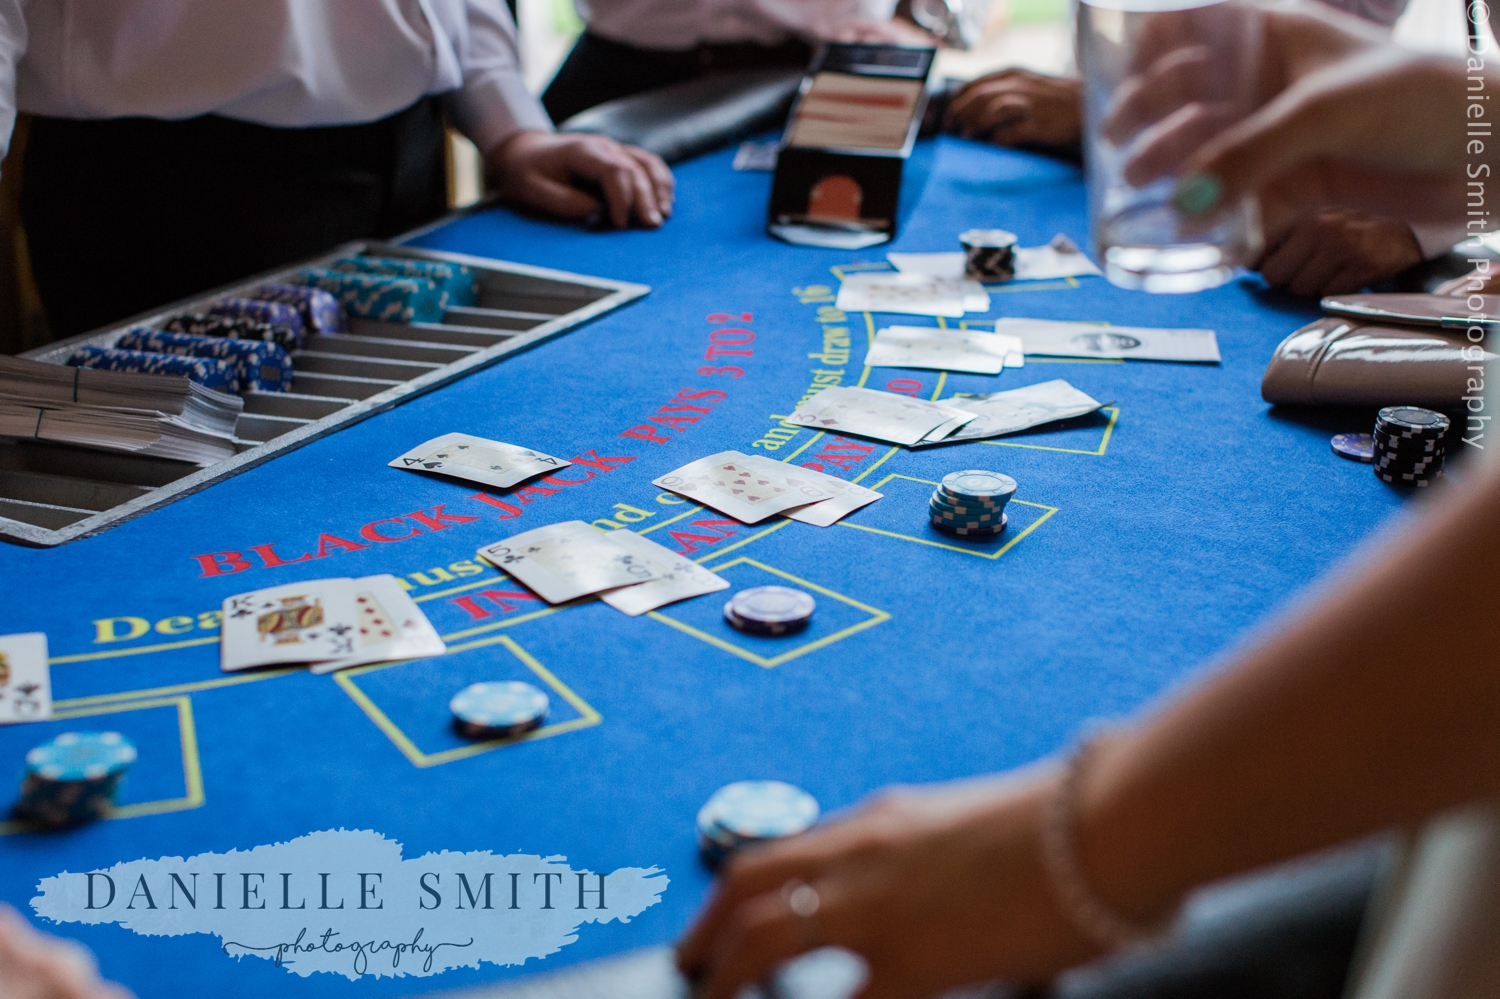 roulette table at wedding